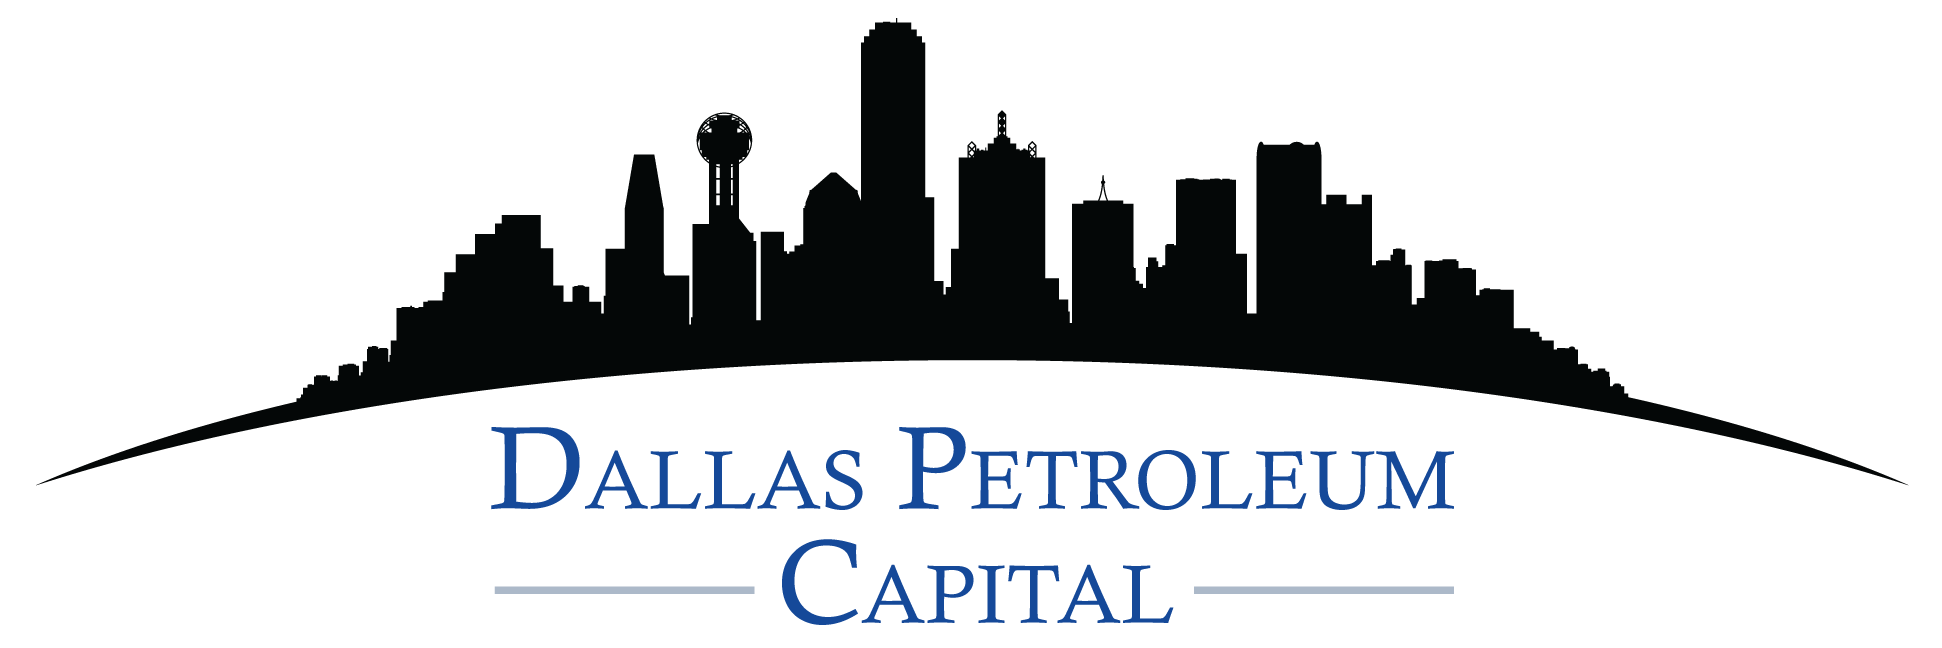 Dallas-Petroleum-Capital-black-web.png